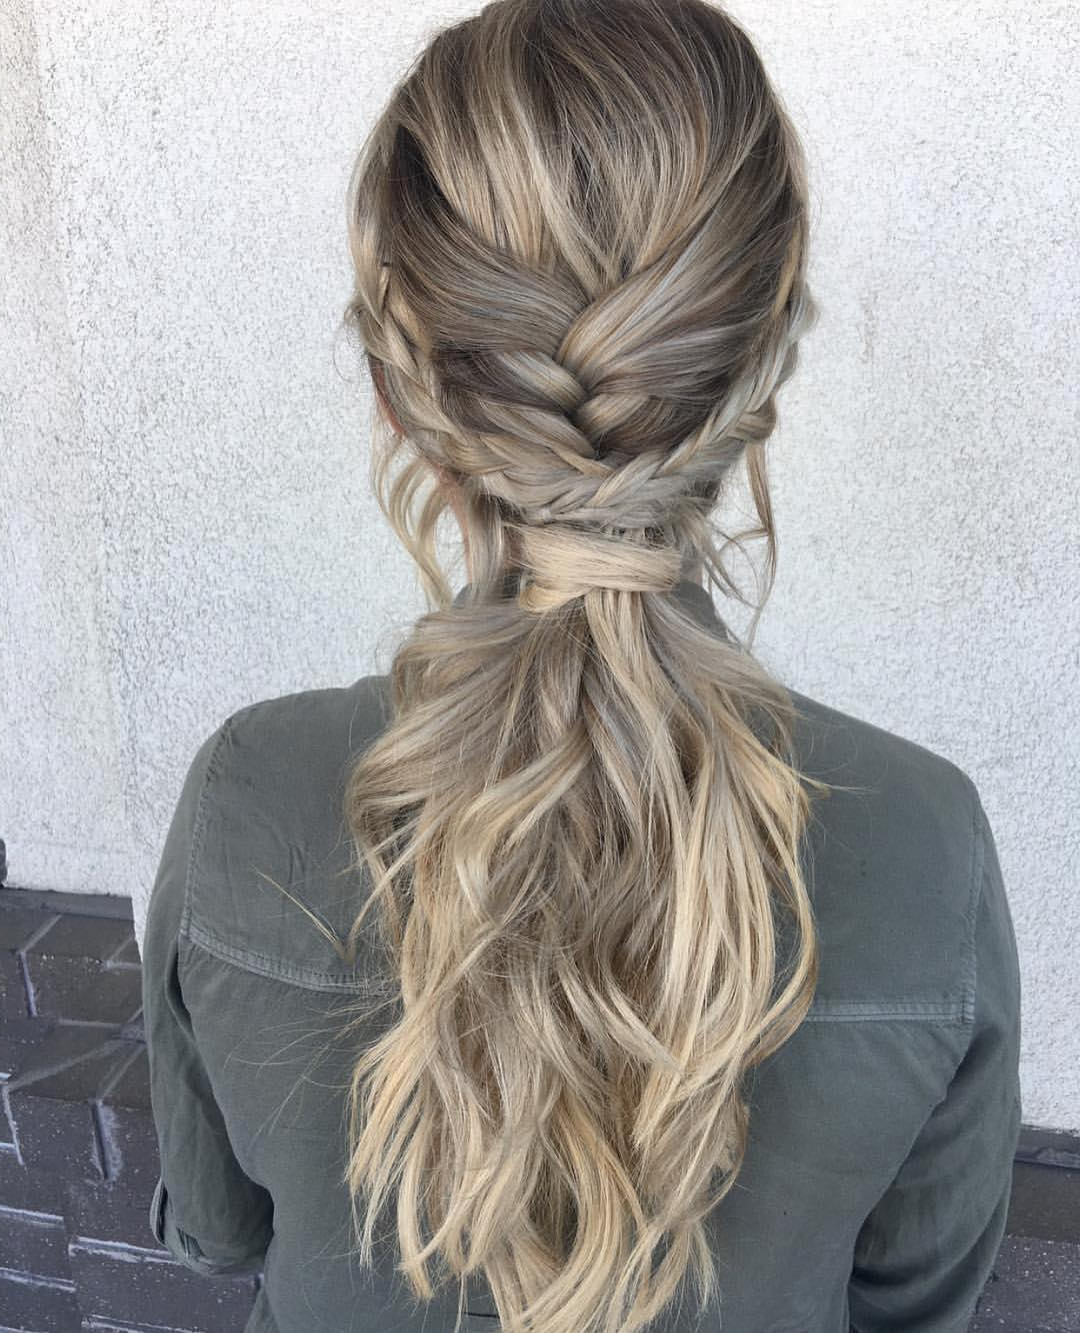 Most Up To Date Golden Blonde Tiny Braid Hairstyles Throughout 10 Ultra Ponytail Braided Hairstyles For Long Hair; Parties (View 5 of 20)